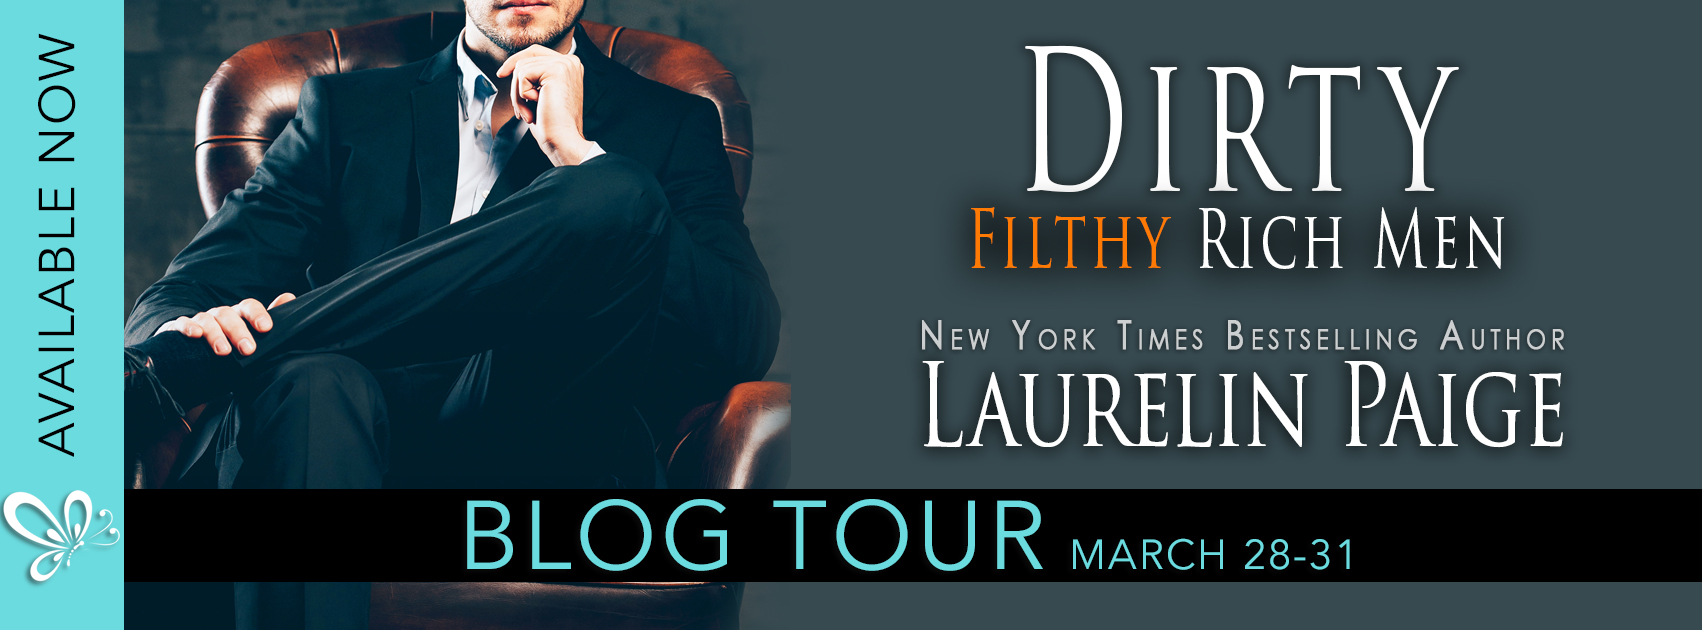 Blog Tour: Dirty Filthy Rich Men by Laurelin Paige